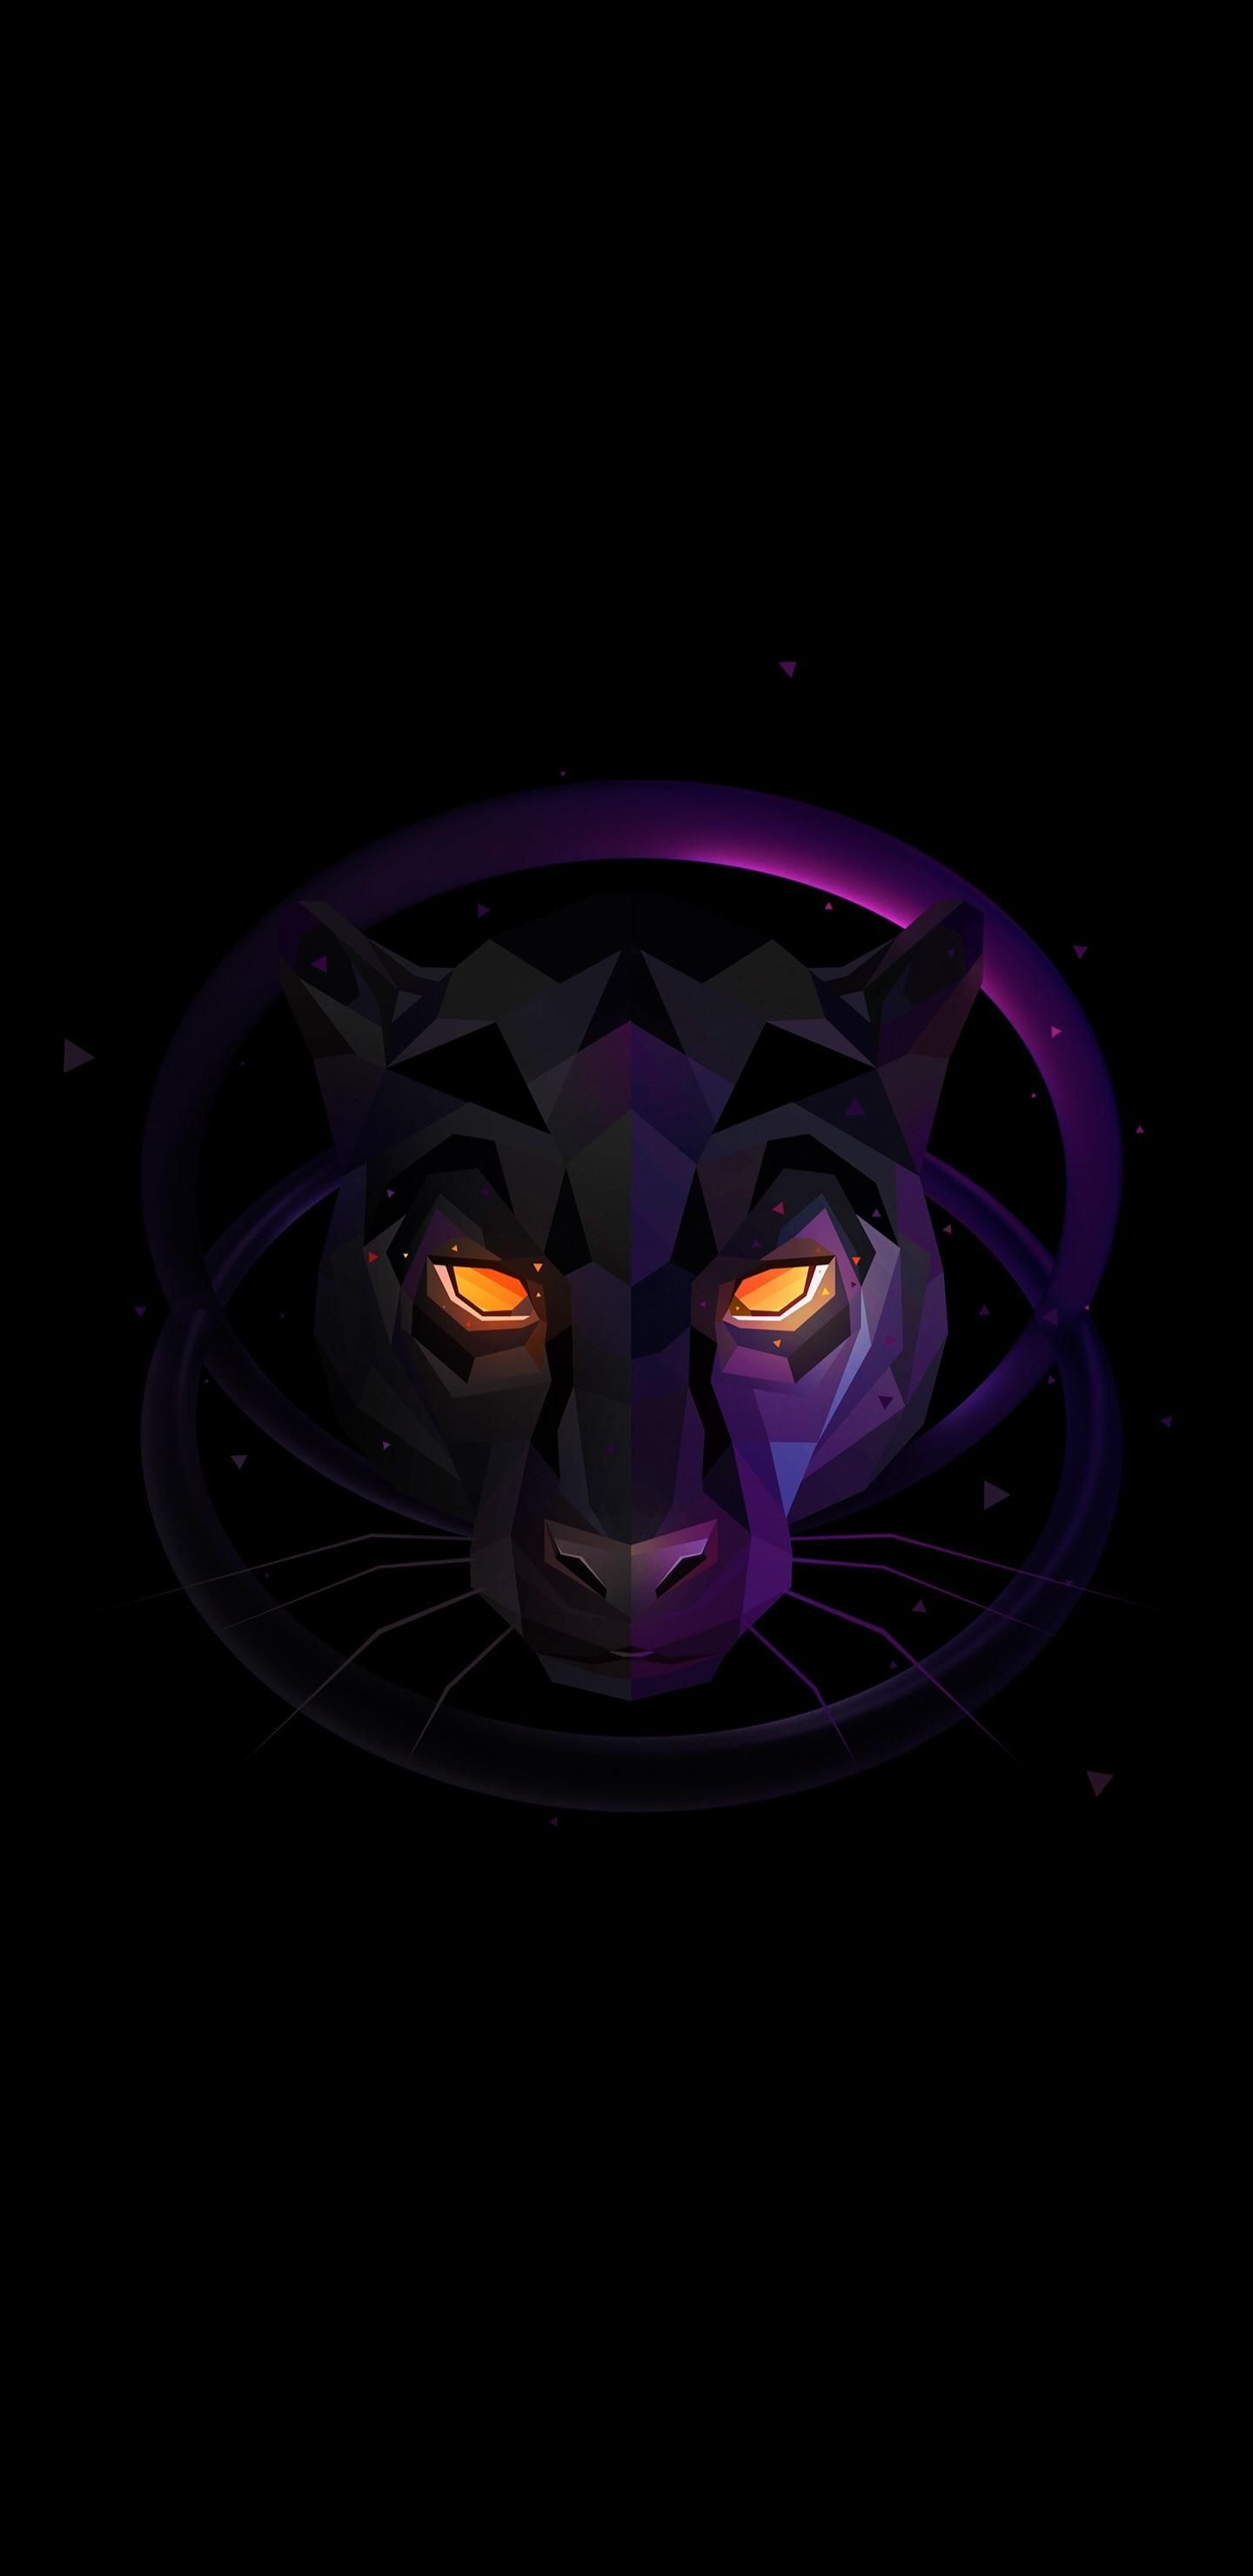 Panthera by Justin Maller Android wallpaper, Phone